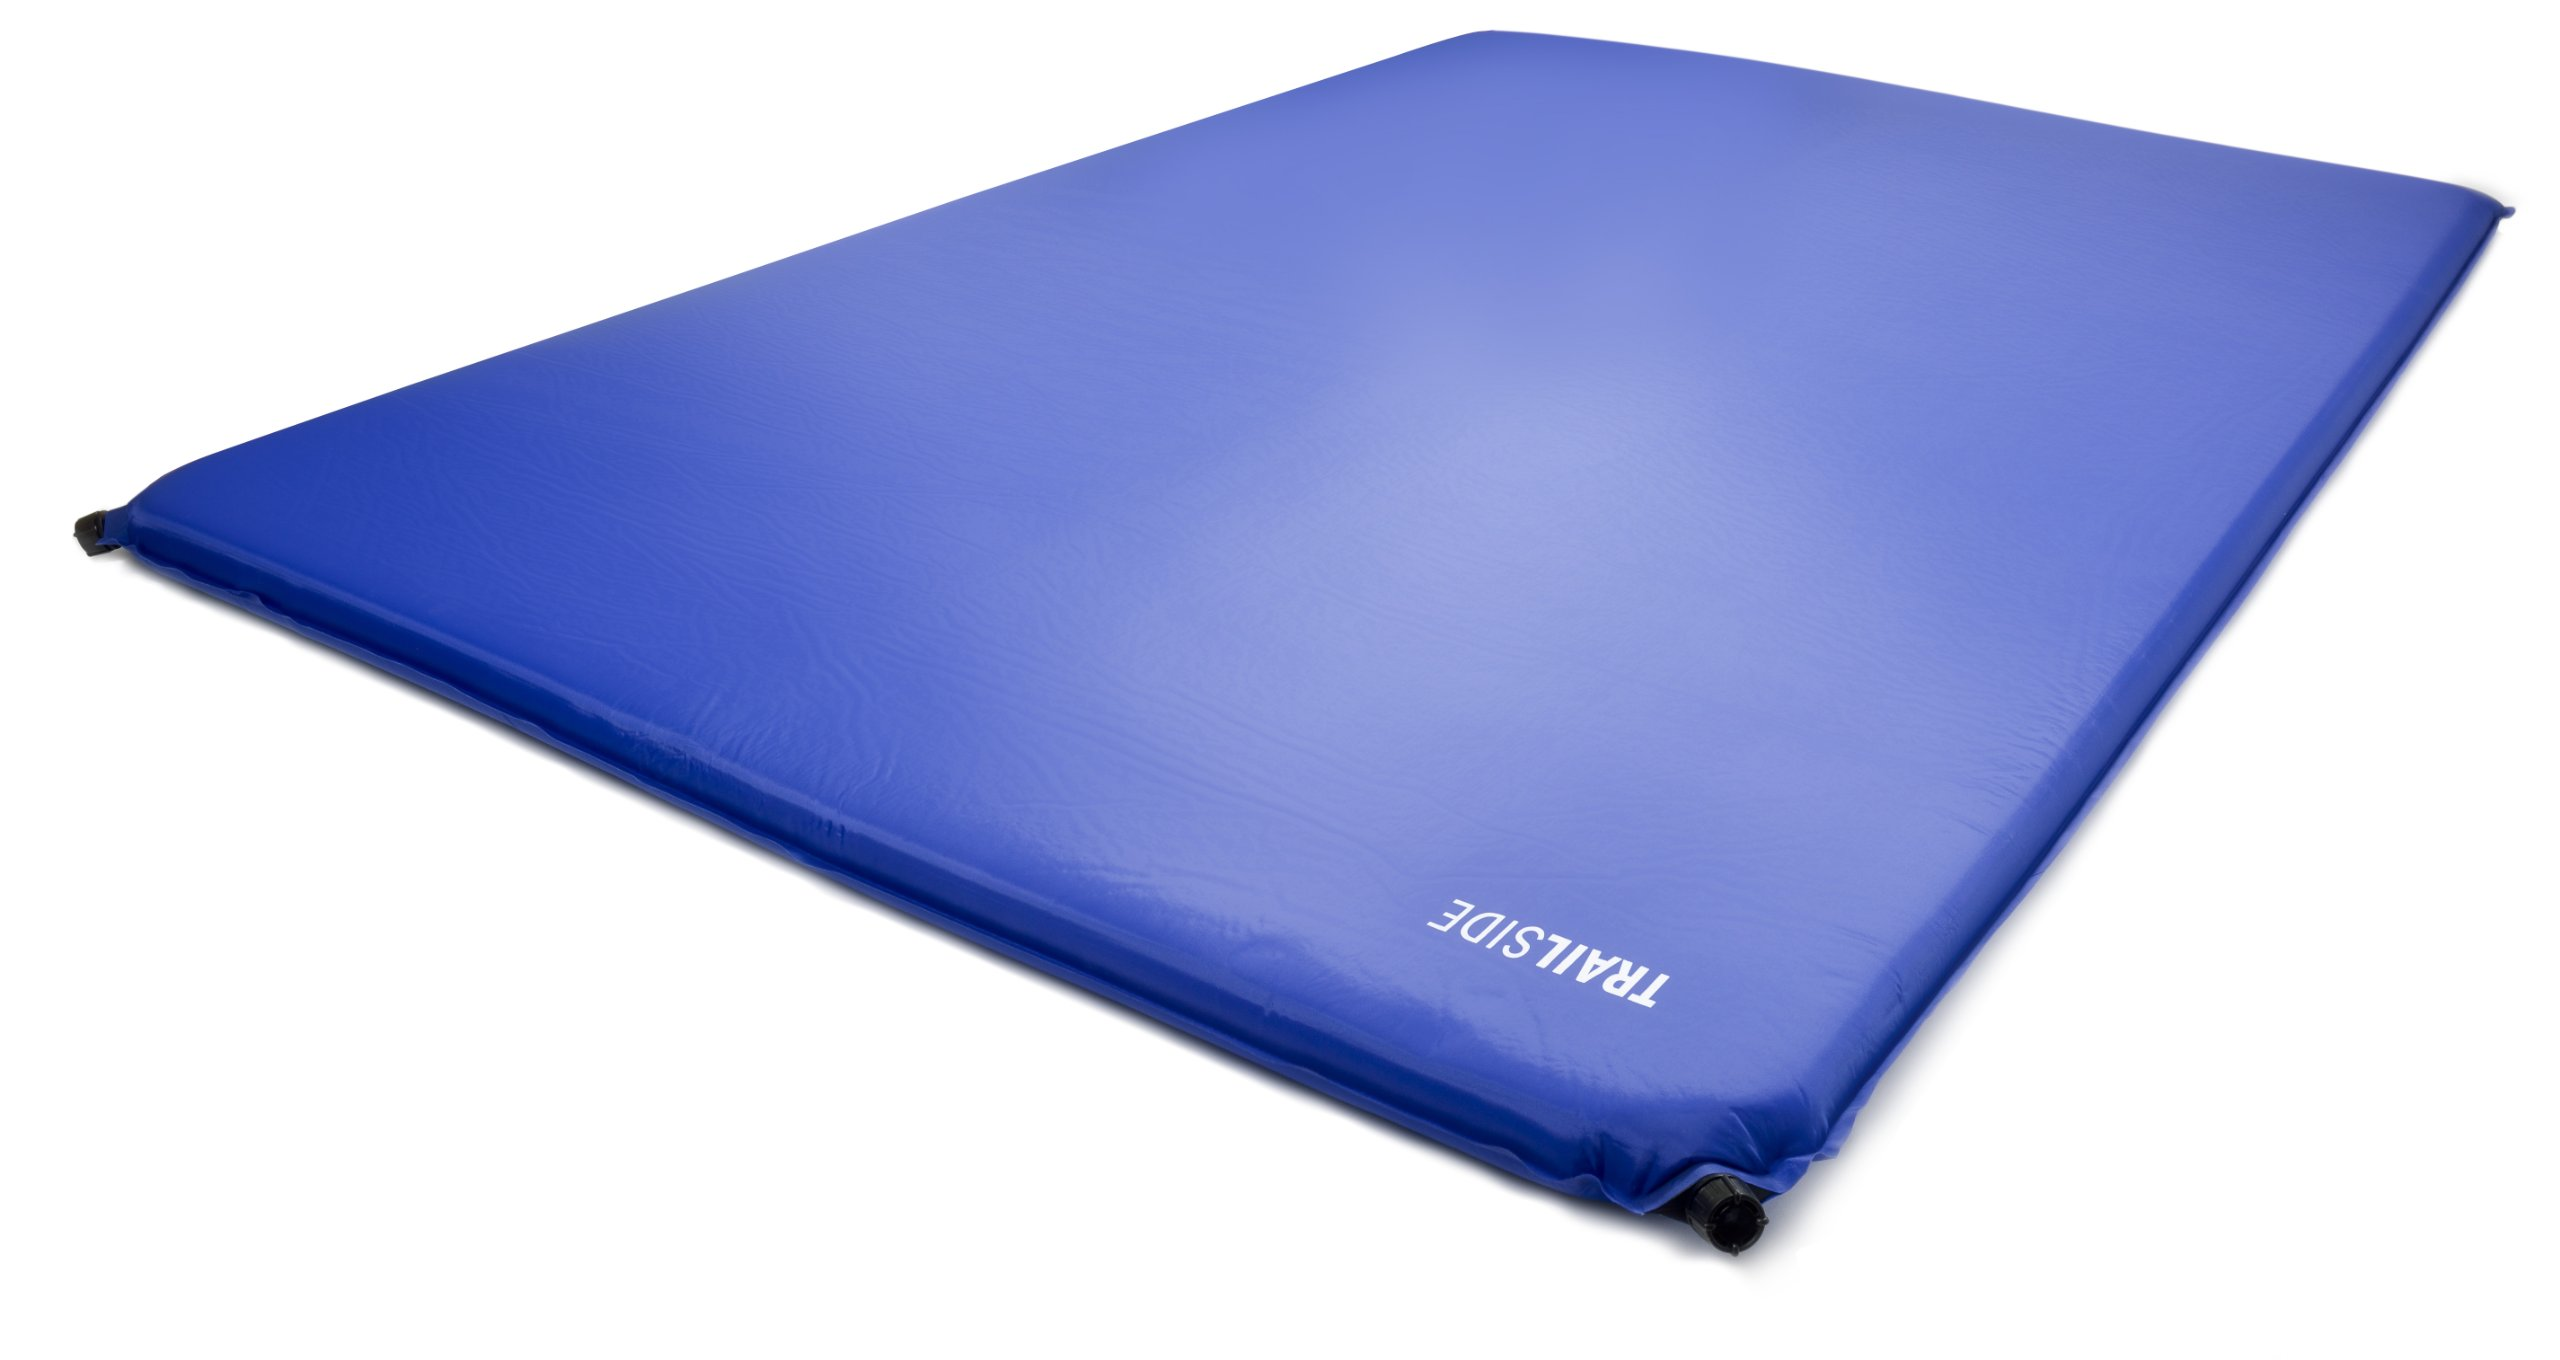 Trailside TrailRest Double-Wide Self-Inflating Mattress, 72x48x2-Inch/Large